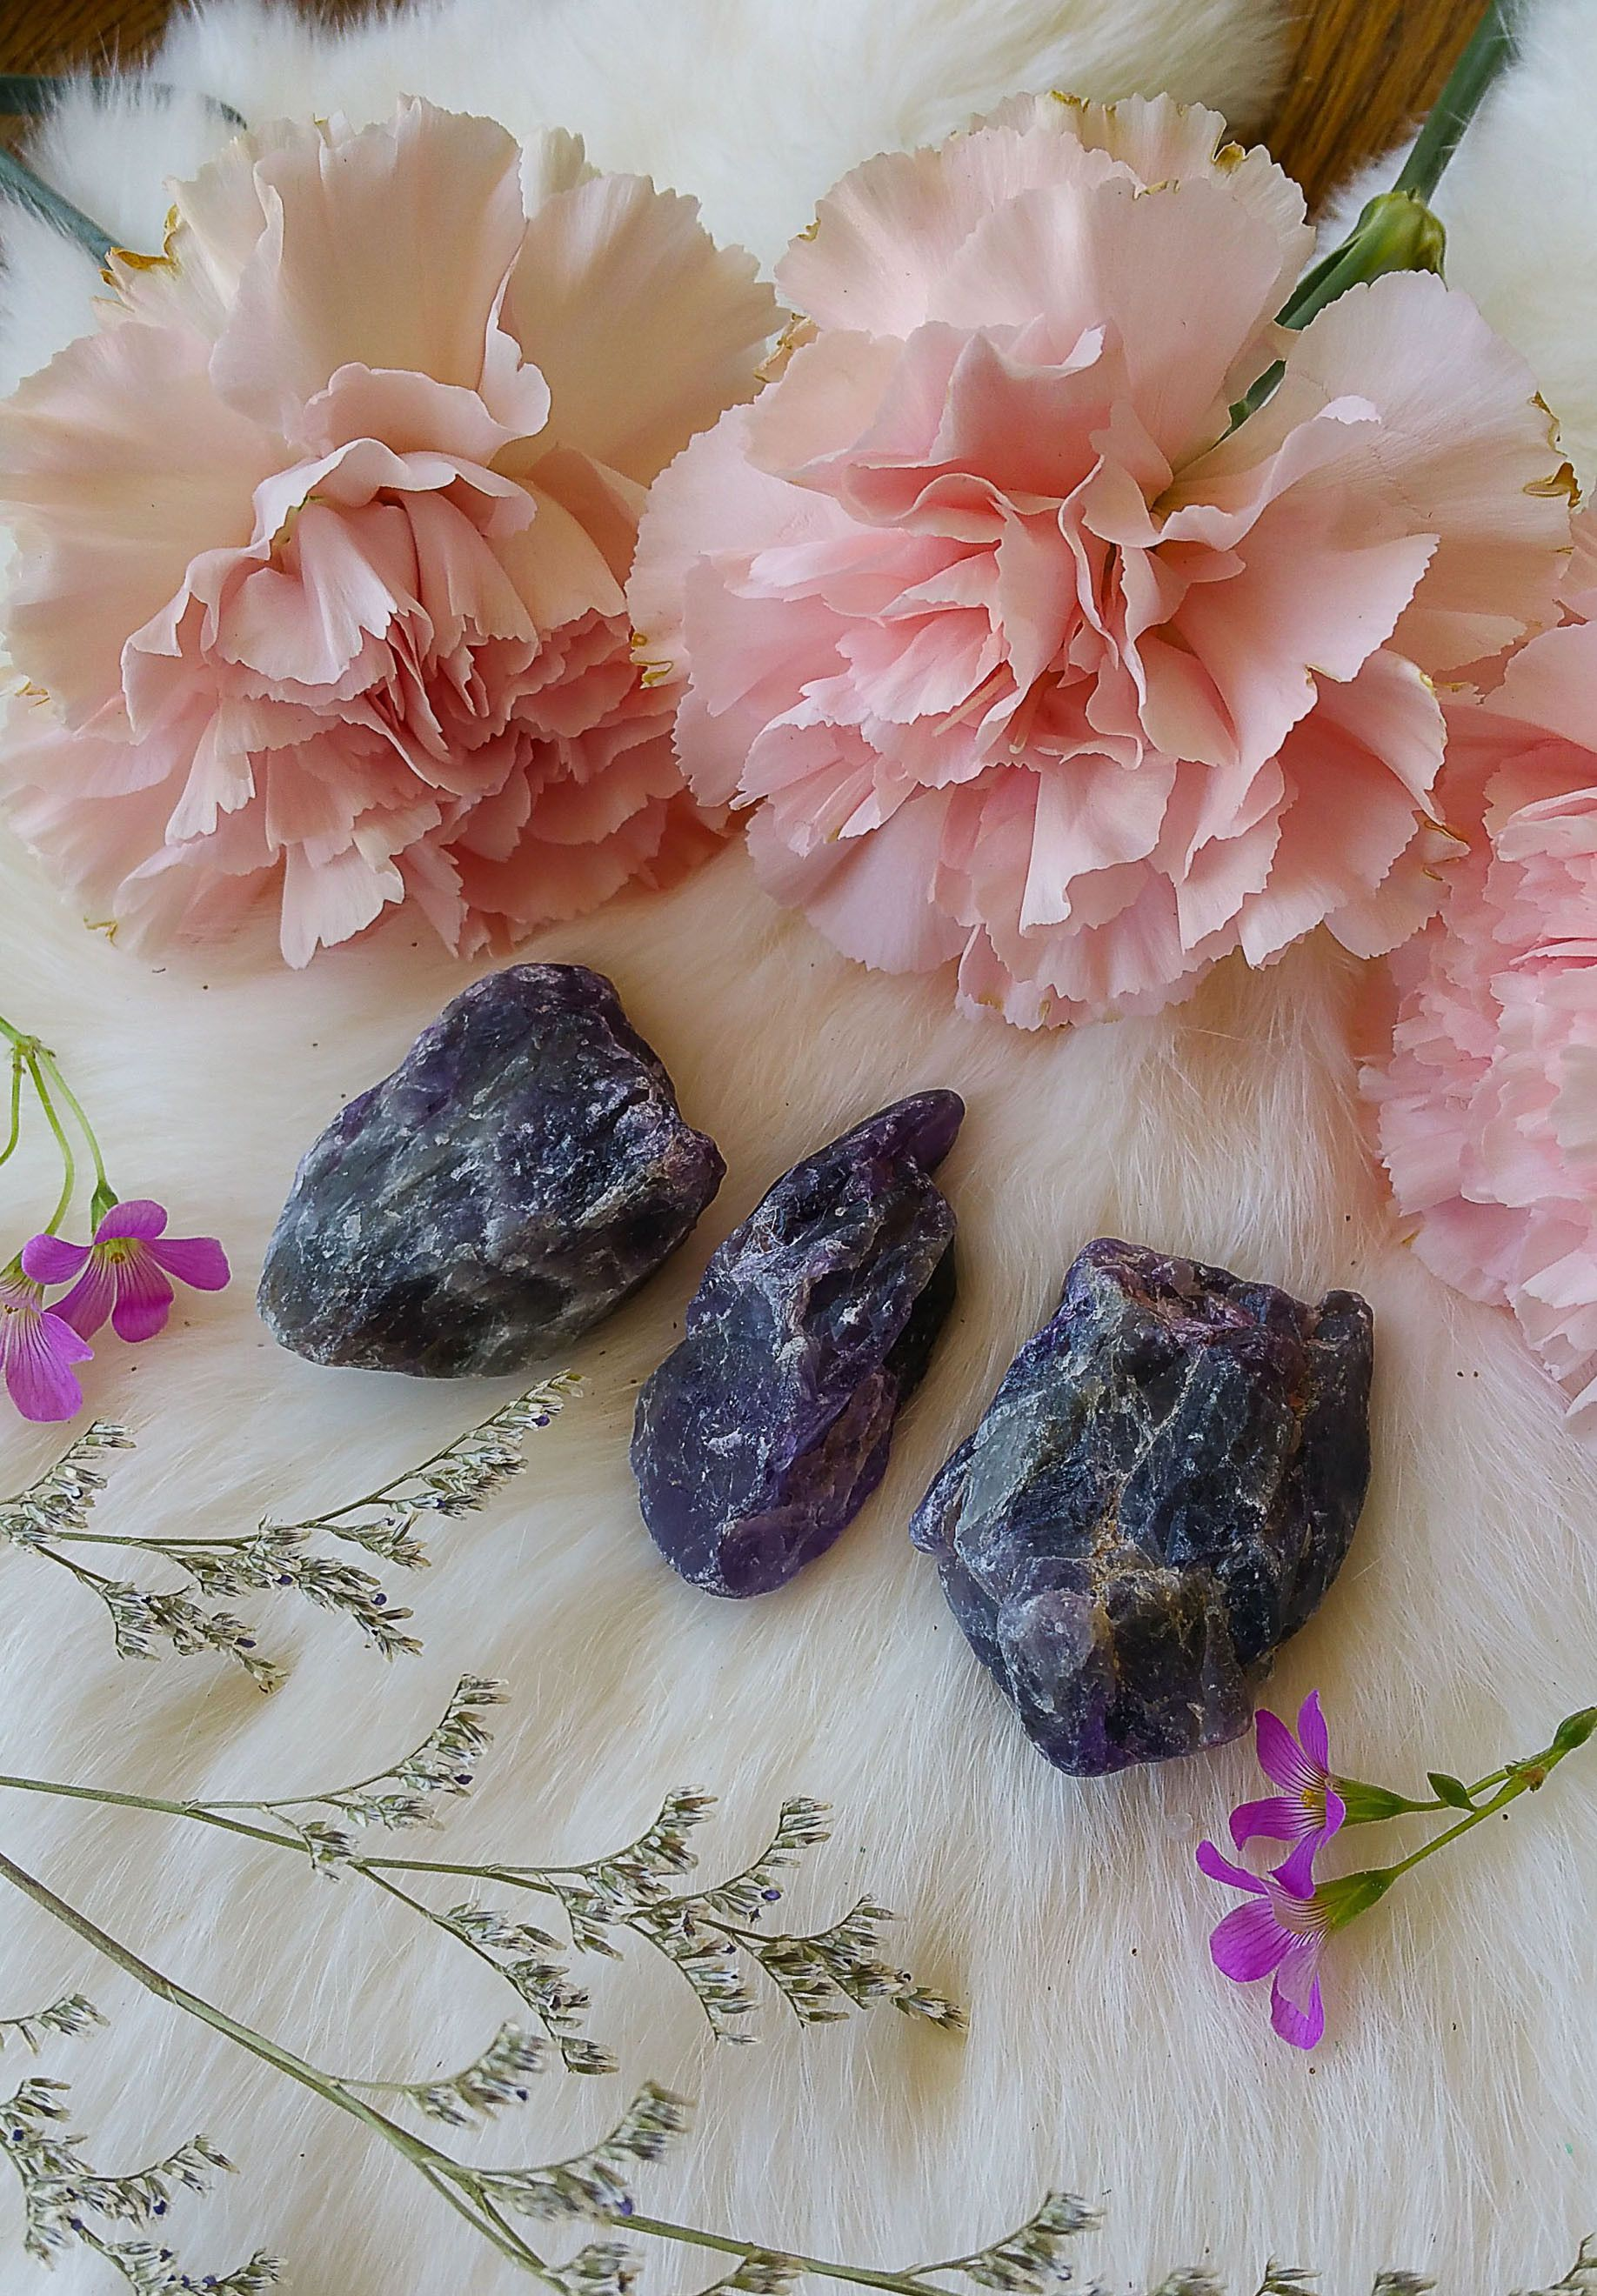 Natural chevron amethyst chunks amethysts and products